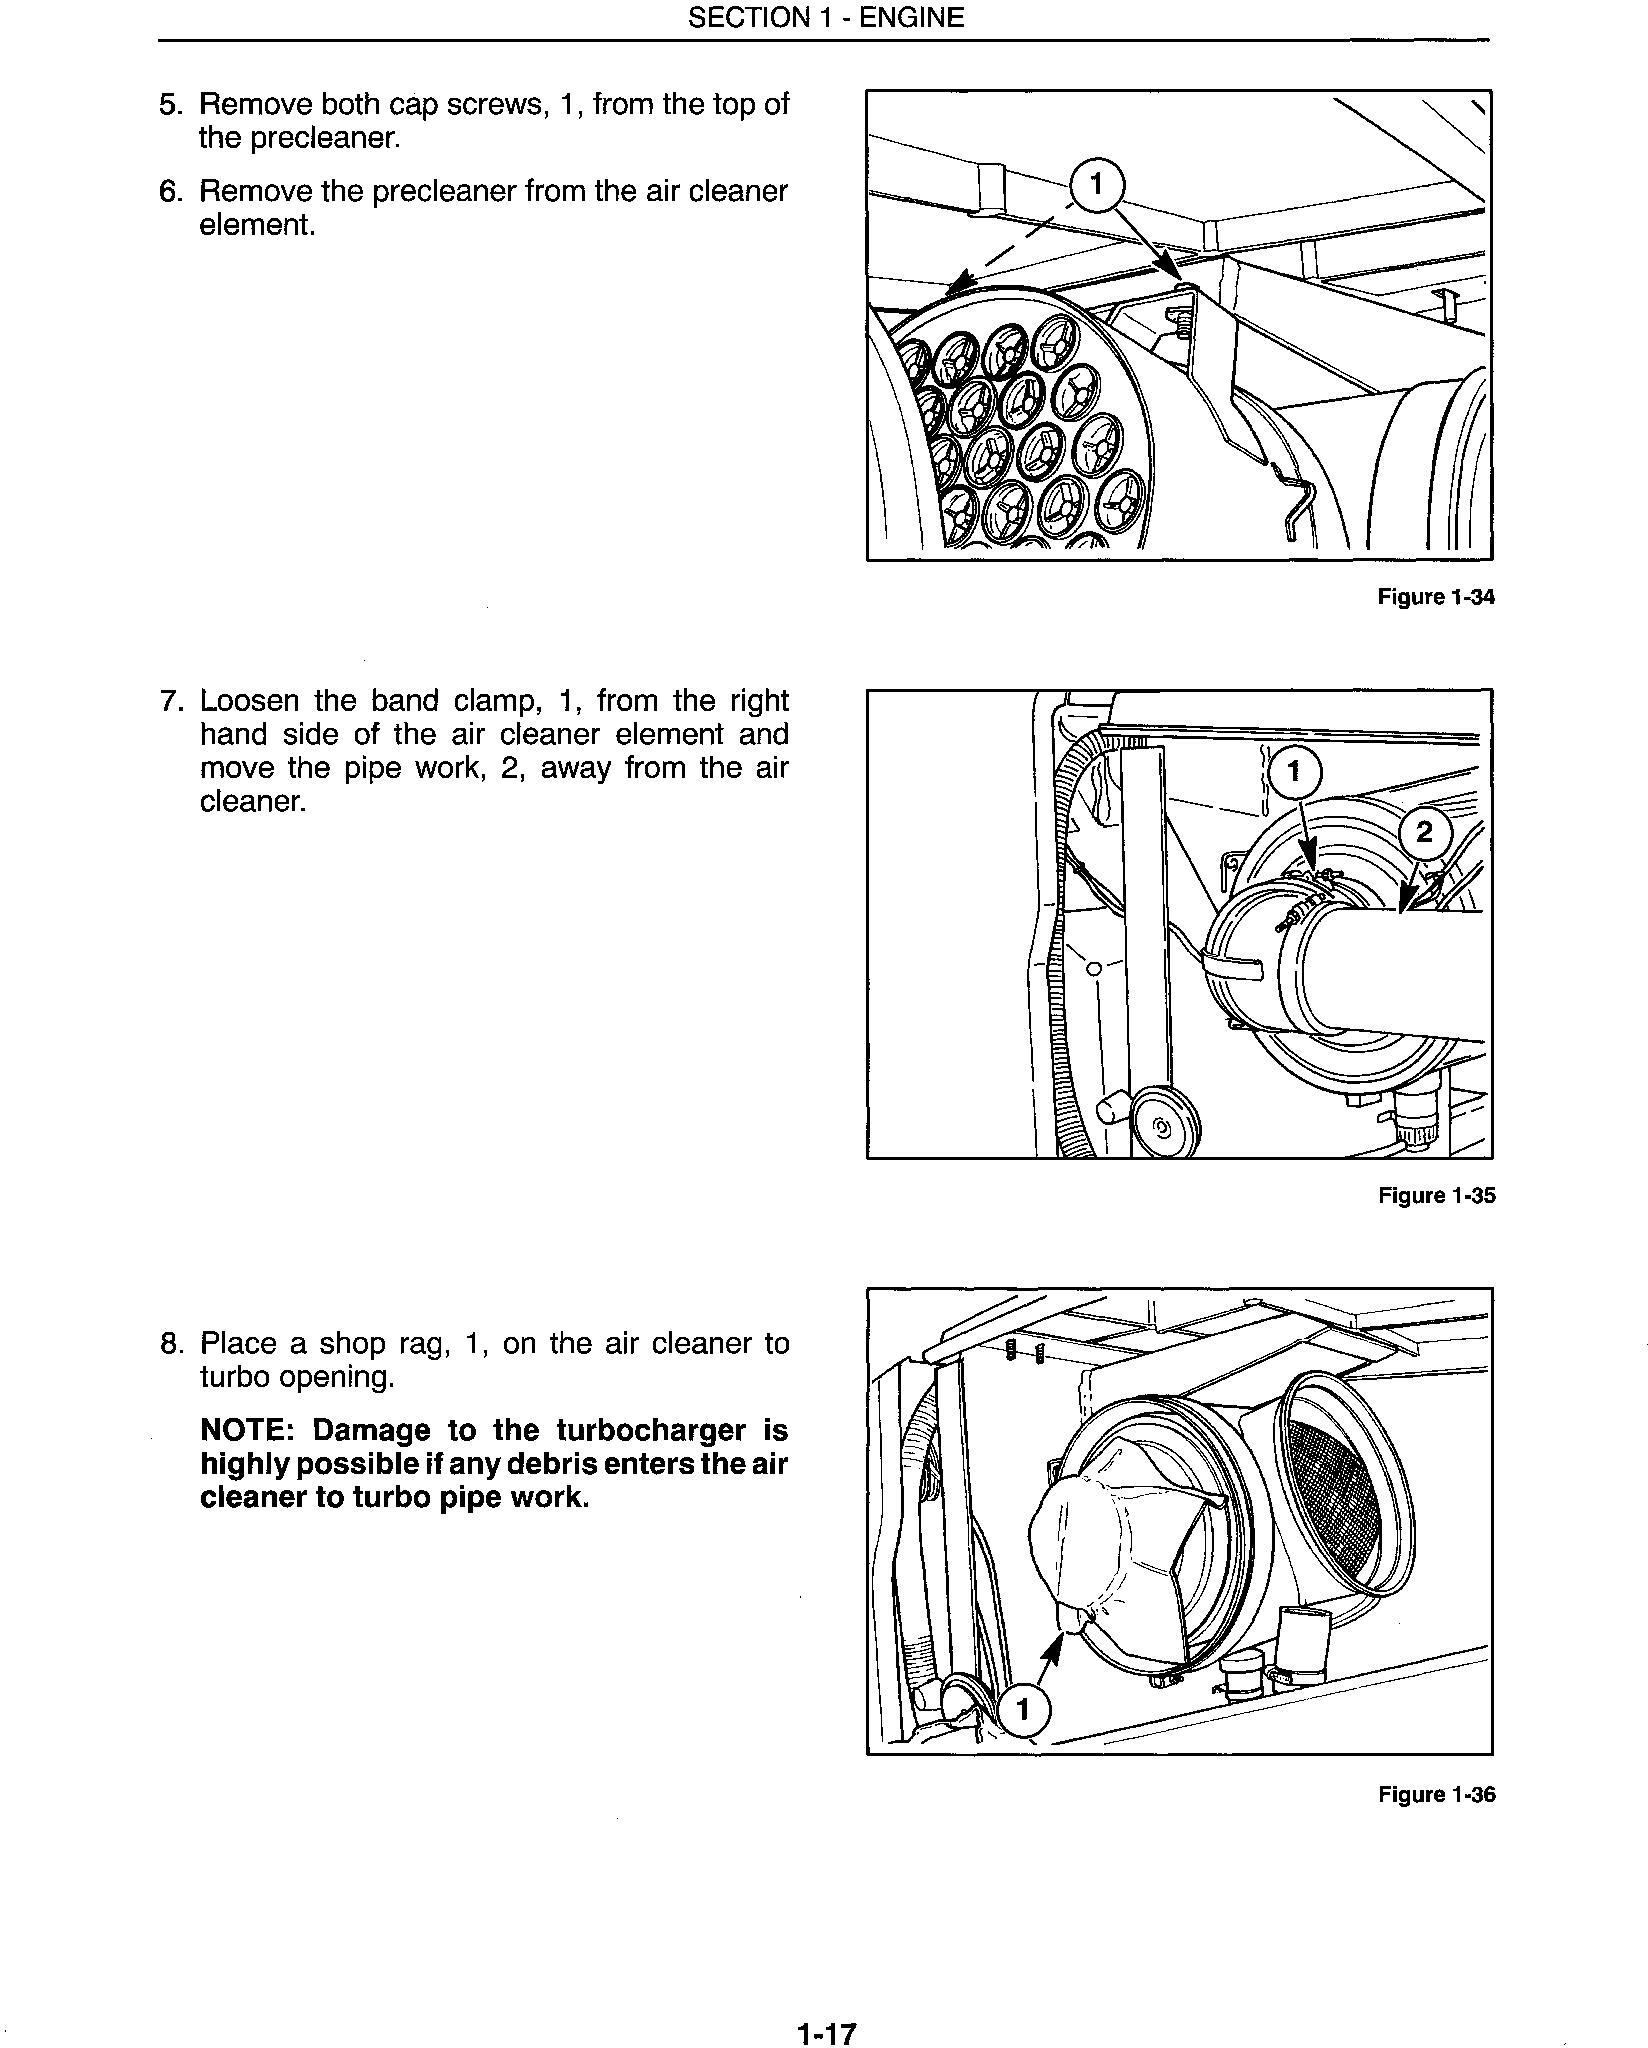 Ford 9280,9480,9680,9880,9282,9482,9682,9882 Complete Tractor Service Manual - 3